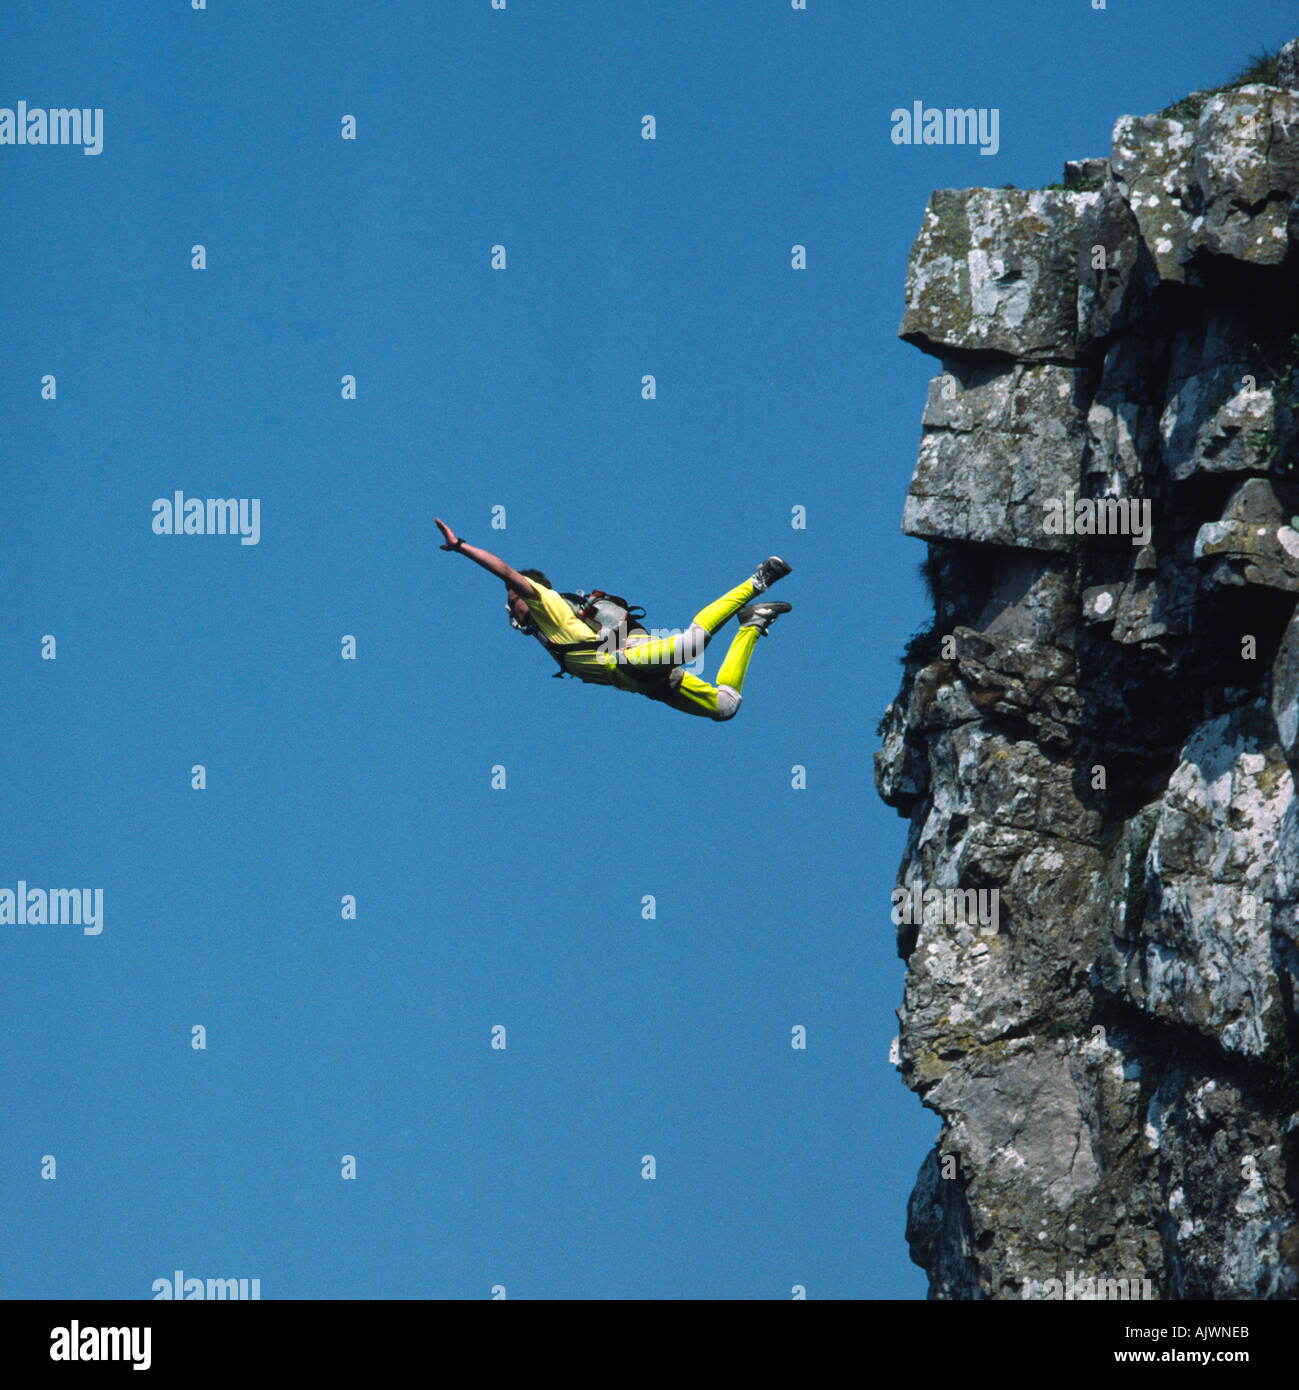 PICTURE CREDIT DOUG BLANE Russell Powell BASE 230 BASE Jumping Cheddar Gorge Avon England Great Britain - Stock Image